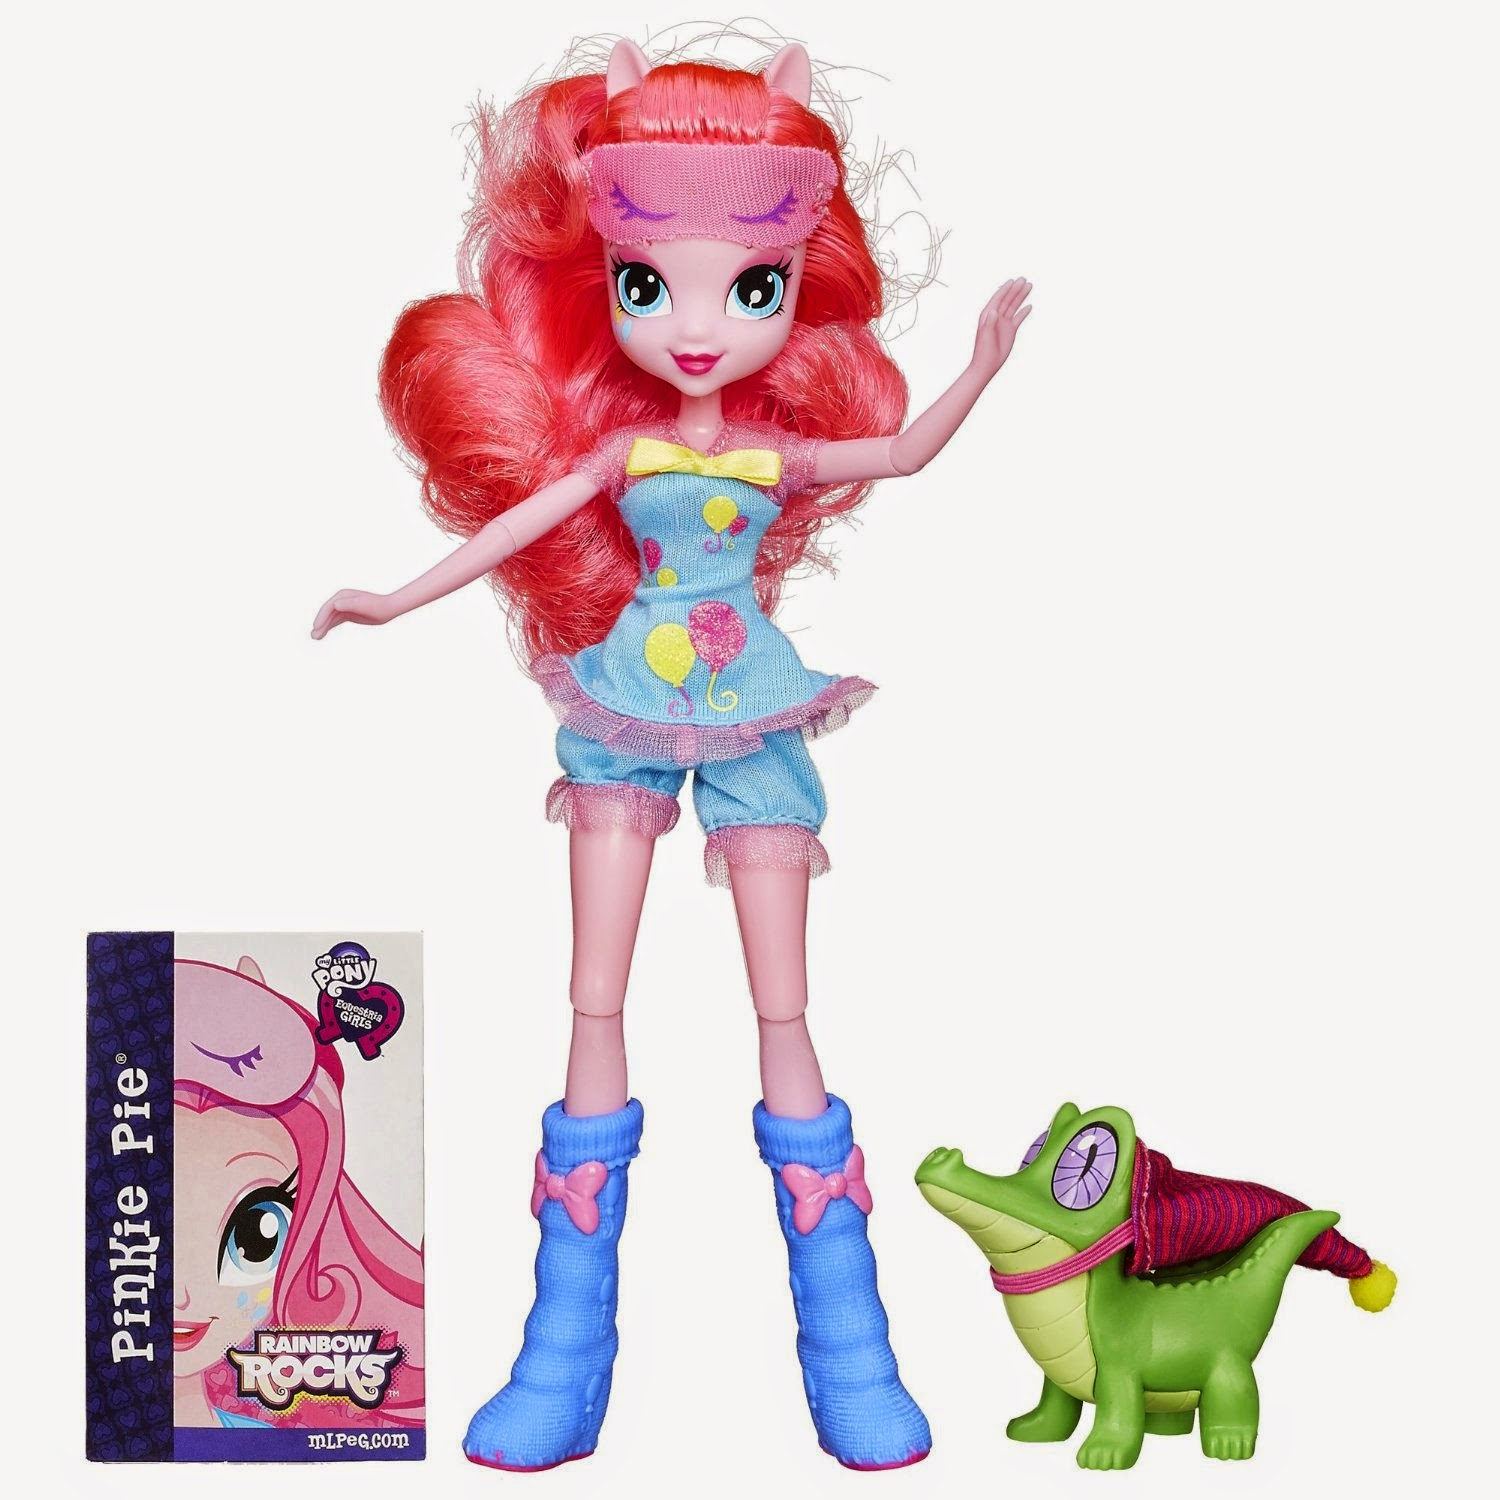 Gummy Snaps Figure and Pinkie Pie from Equestria Girls Sleepover Set